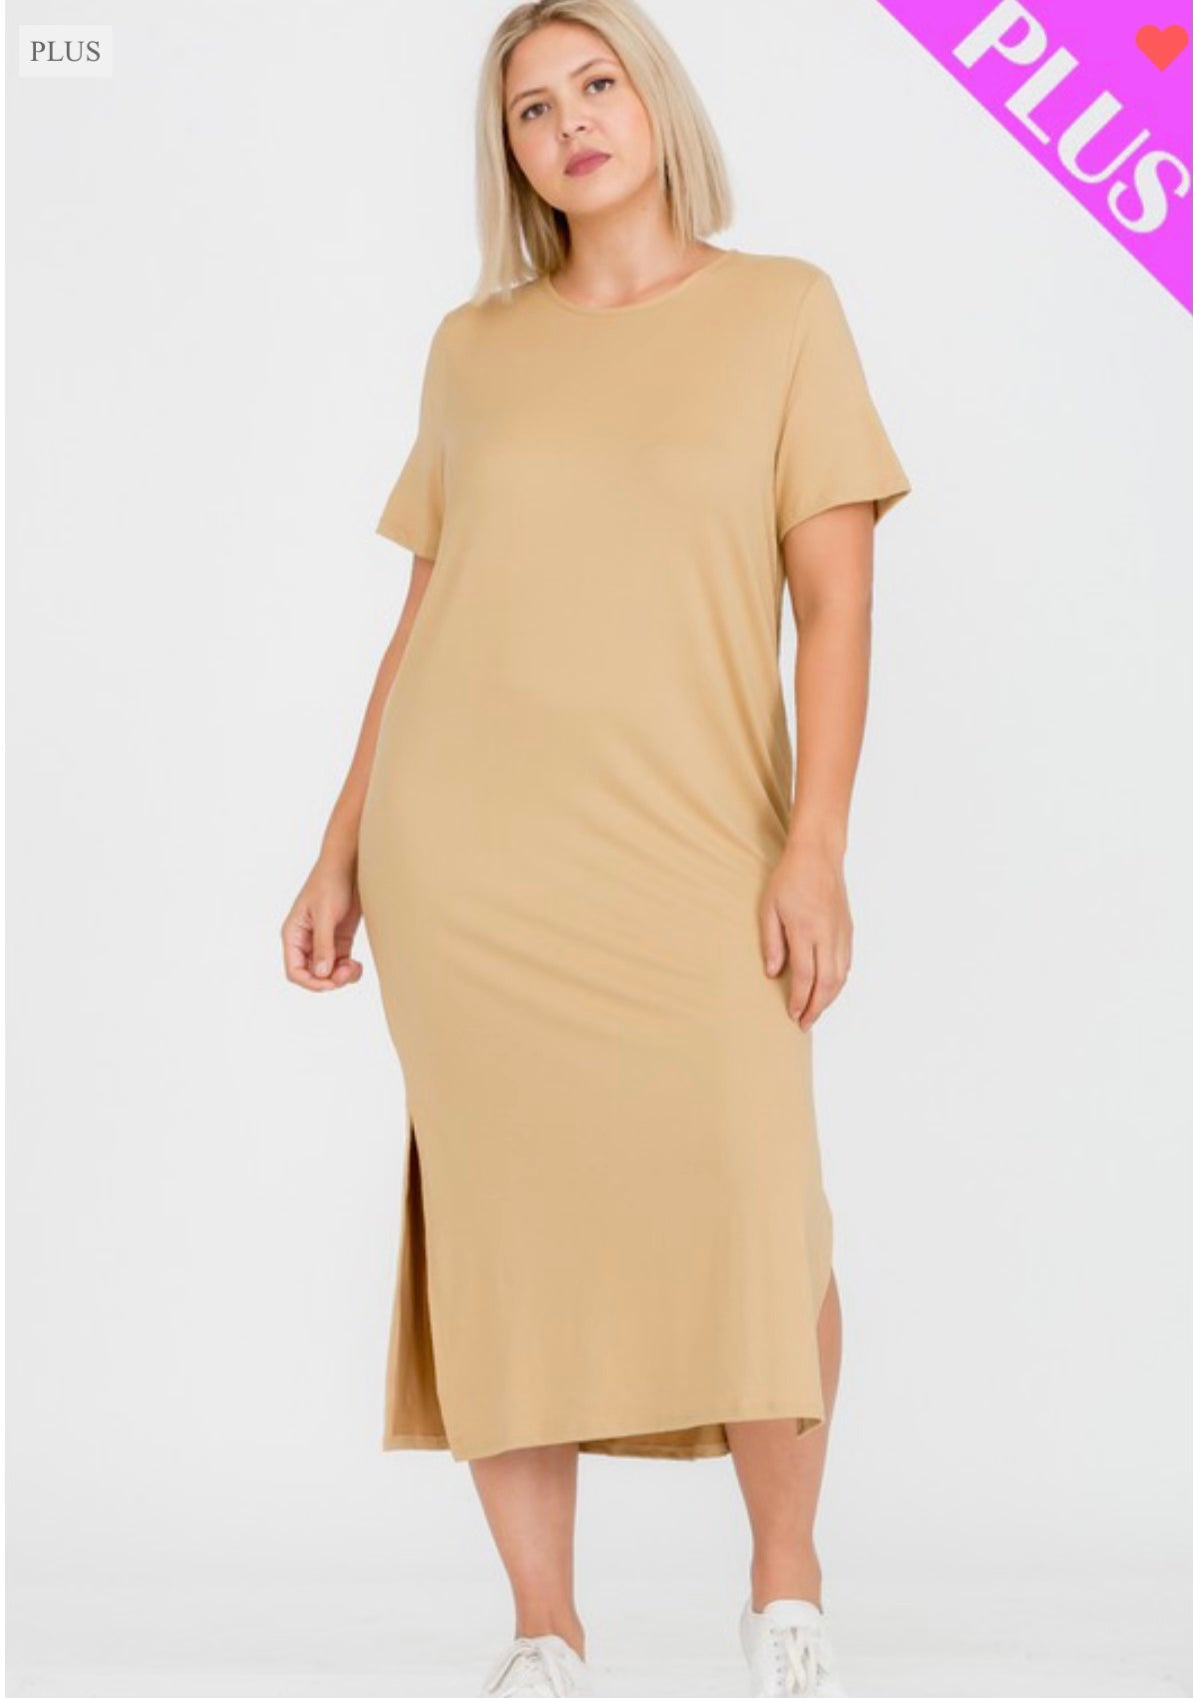 "PLUS SIZE ""Quarantine"" Loungewear"